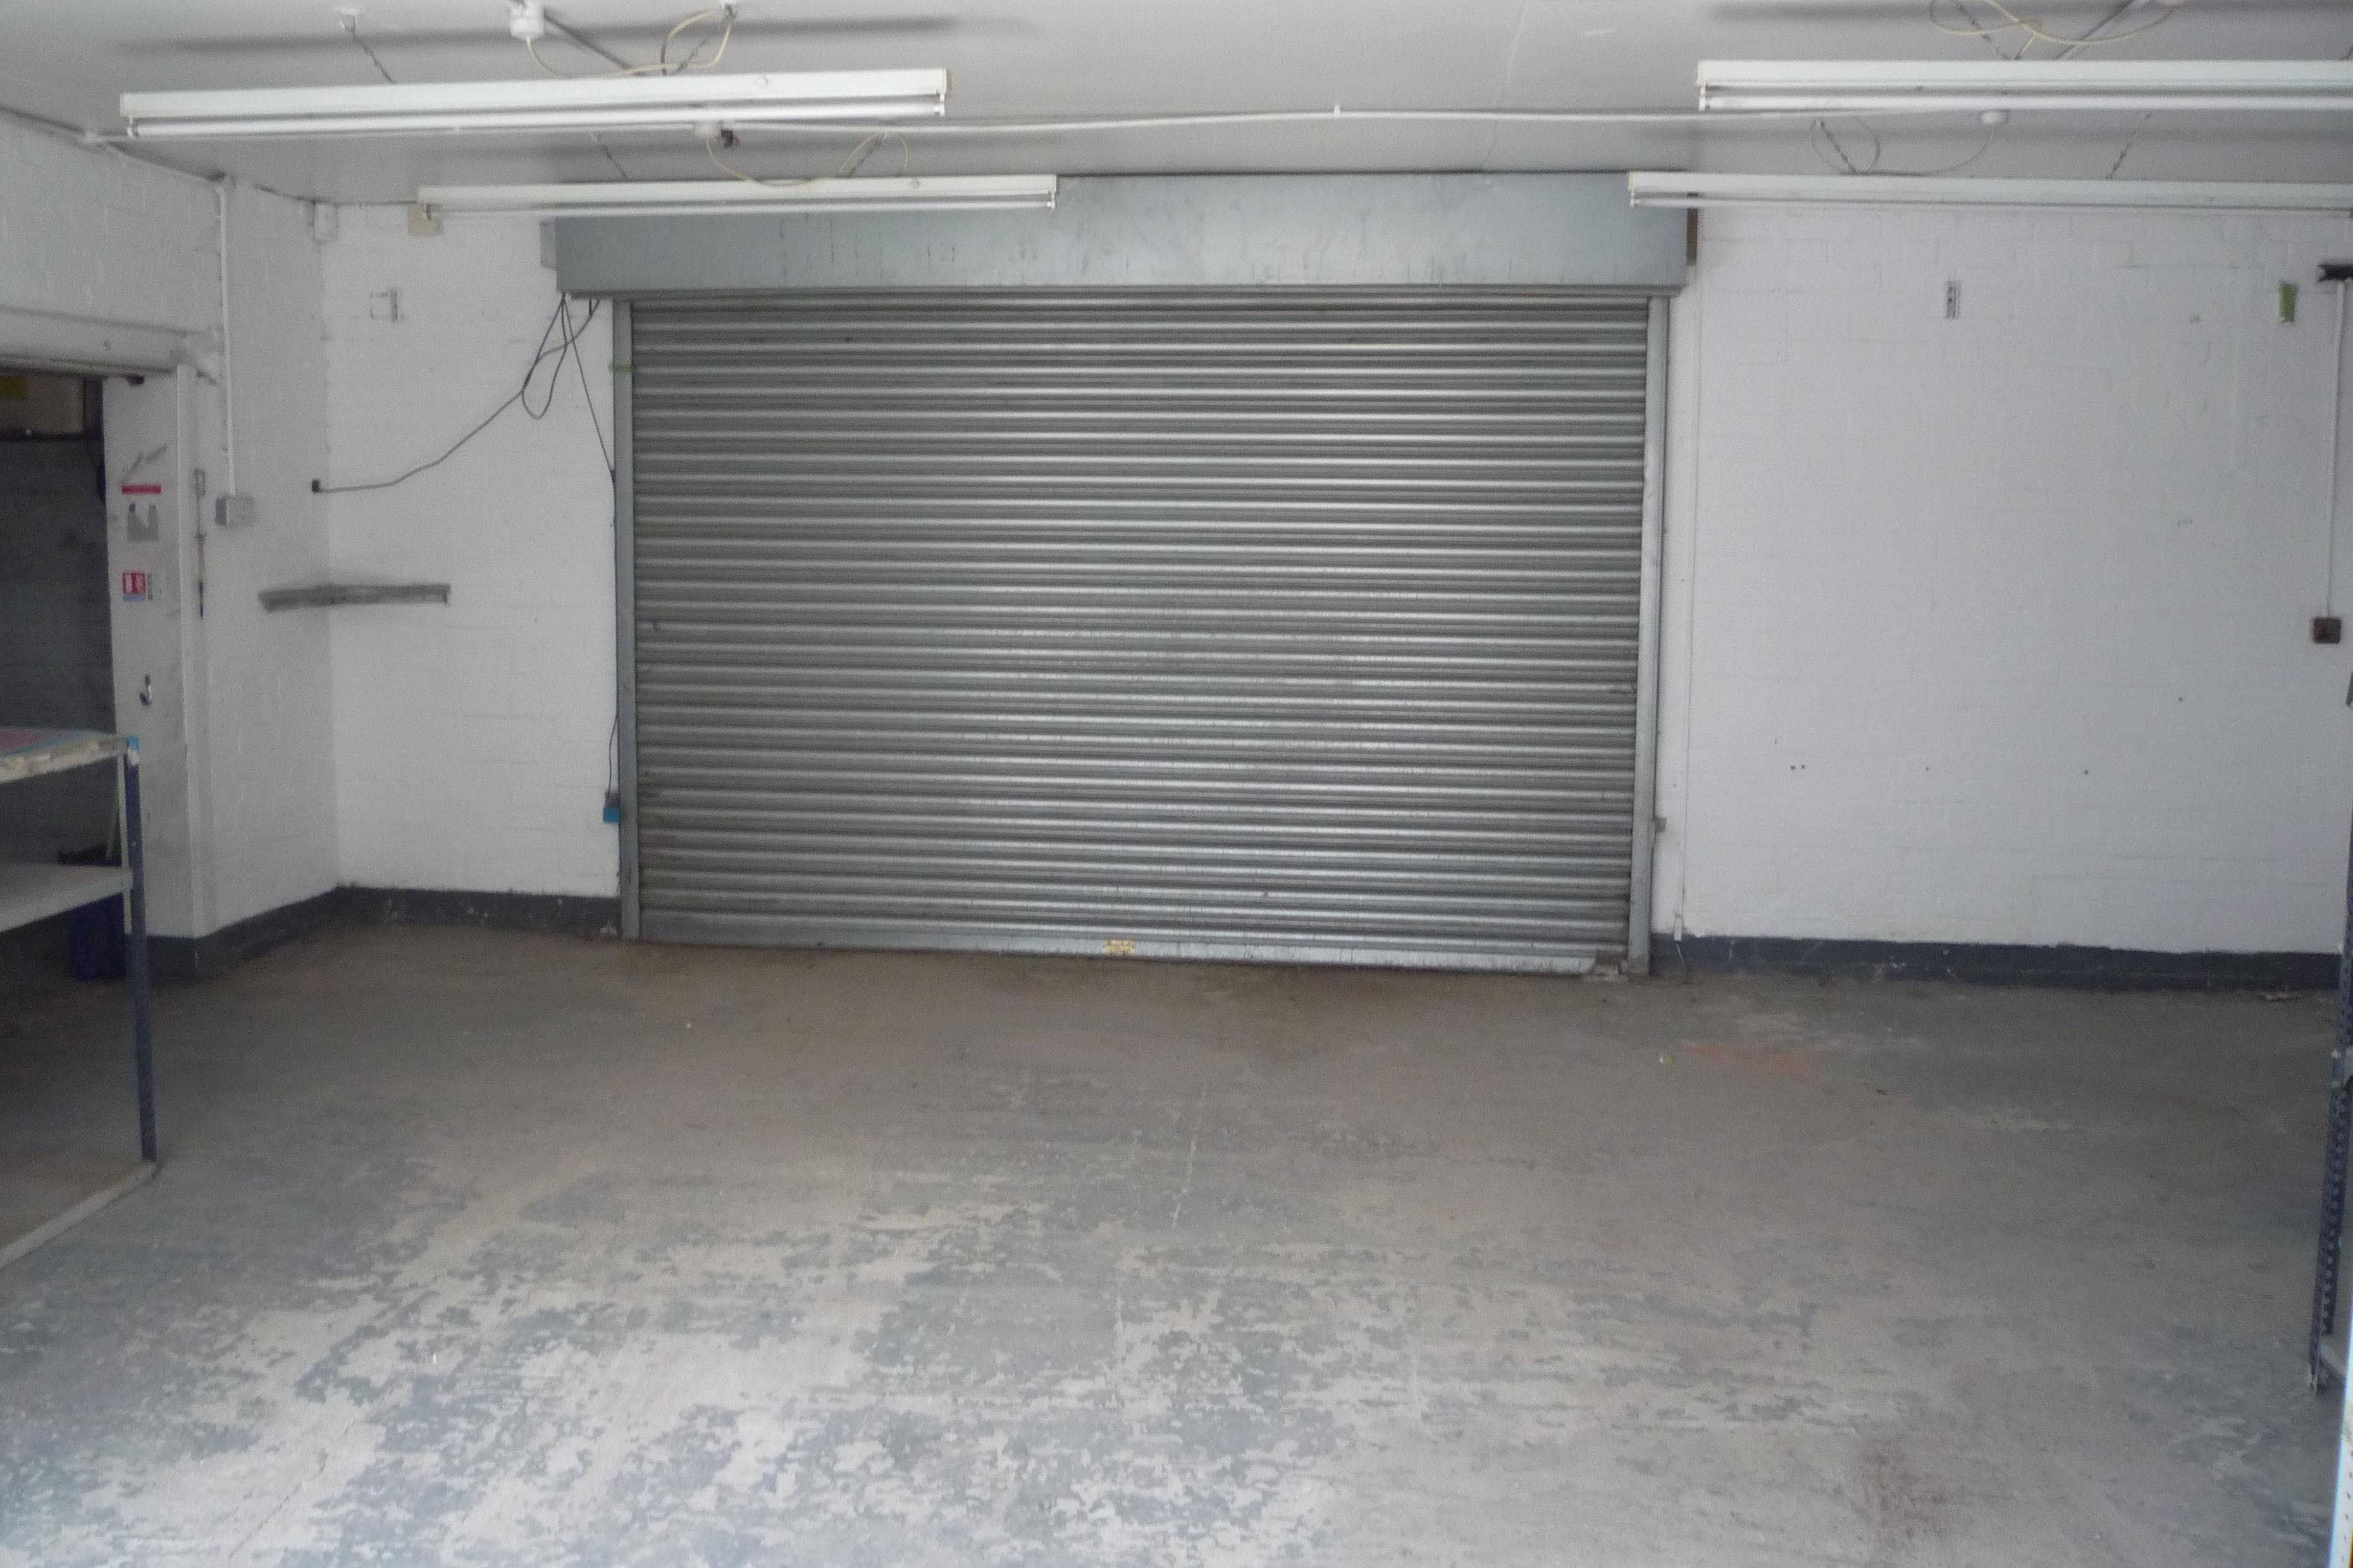 Unit 24 Wilton Road, St Georges Industrial Estate, Camberley For Sale - P1030795.JPG